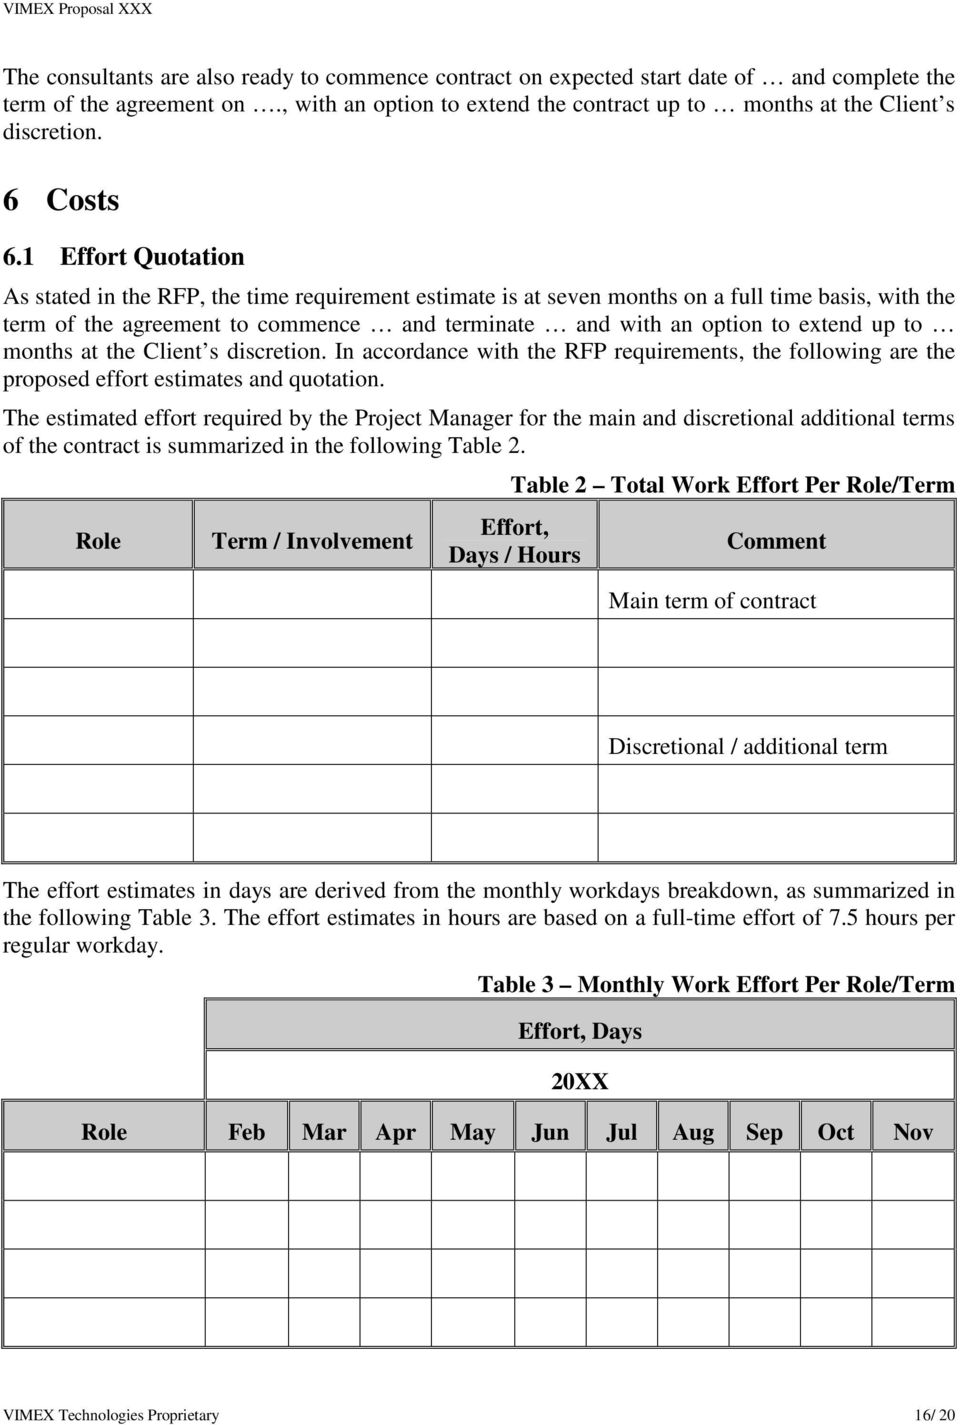 1 Effort Quotation As stated in the RFP, the time requirement estimate is at seven months on a full time basis, with the term of the agreement to commence and terminate and with an option to extend